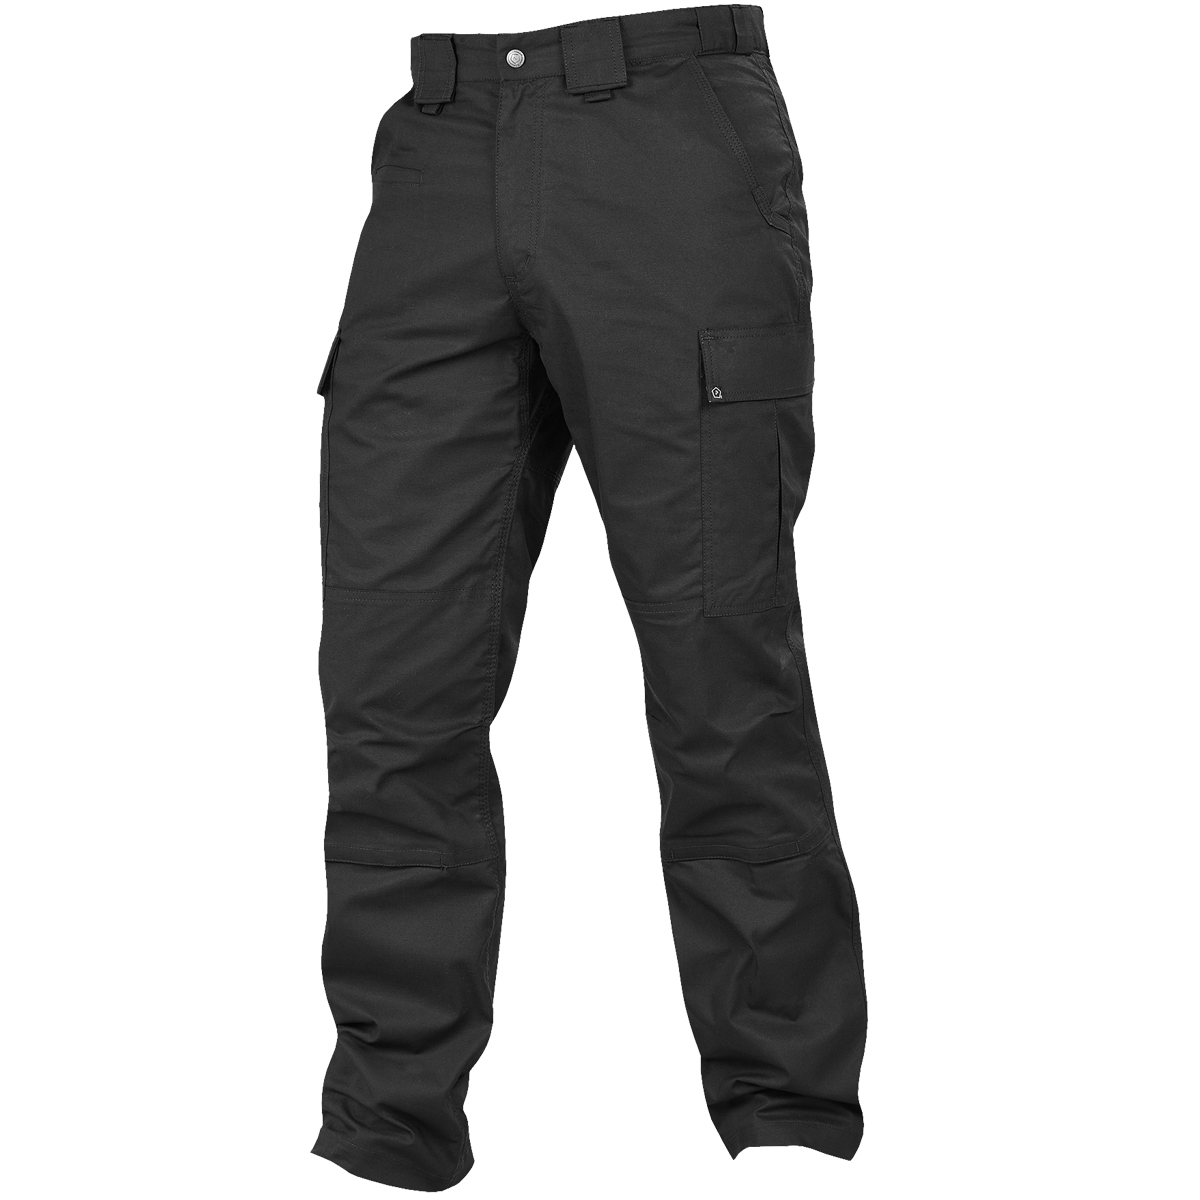 Details about Pentagon T-BDU Pants Mens Cargo Protect Security Tactical Police  Trousers Black ce4ce278f31